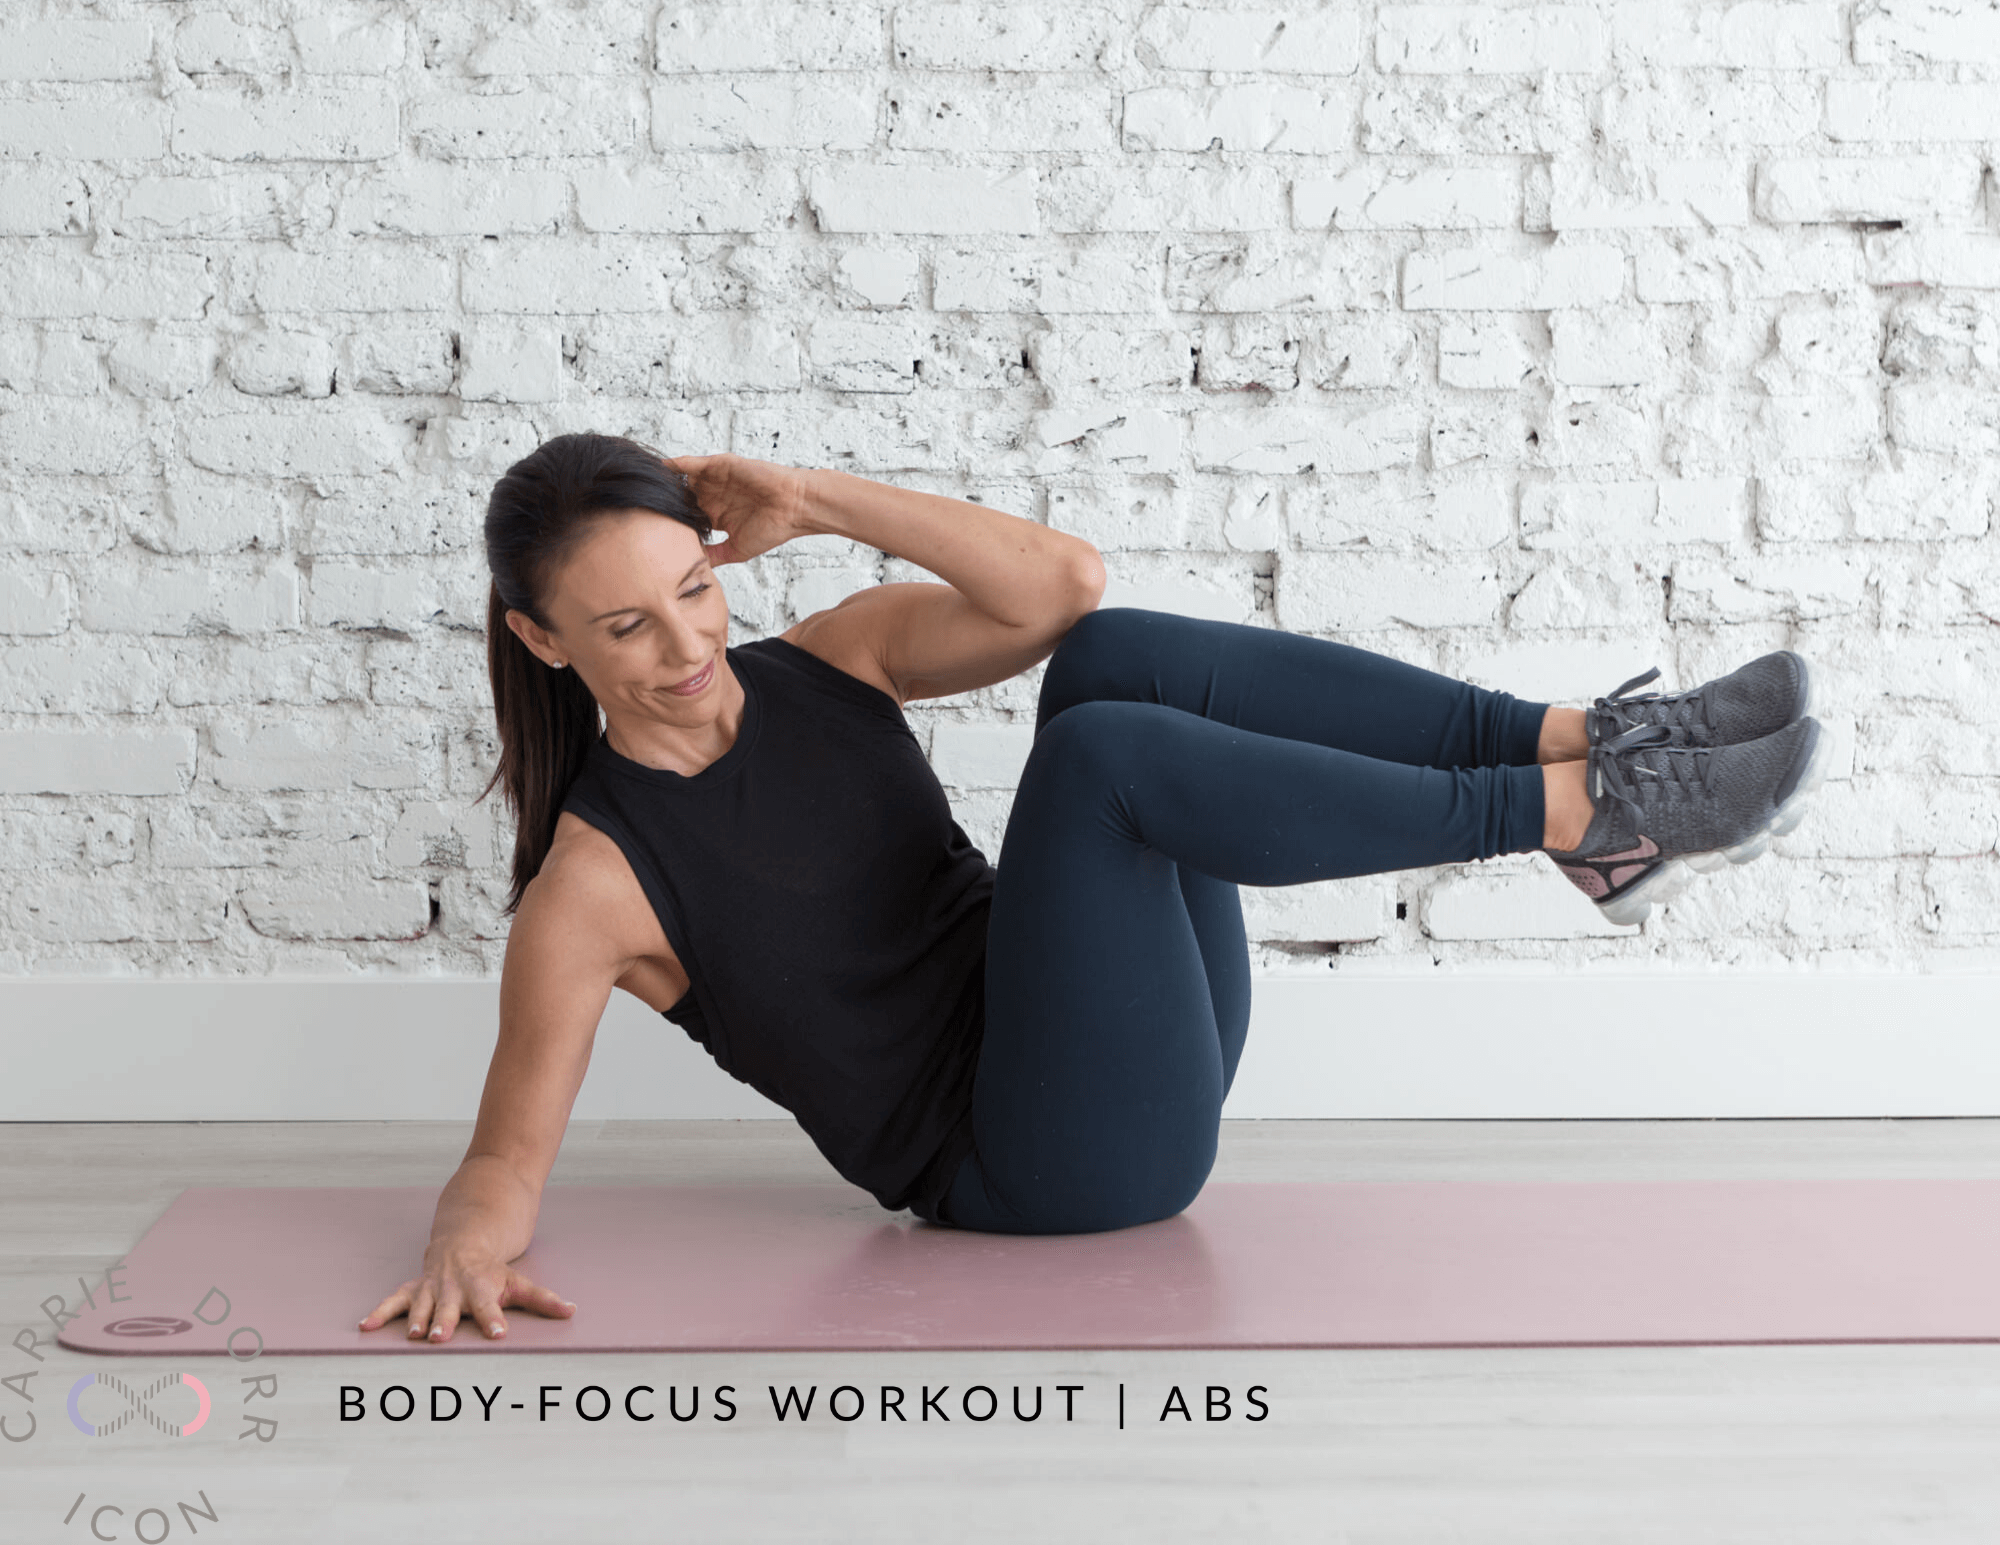 BODY-FOCUS WORKOUT | ABS